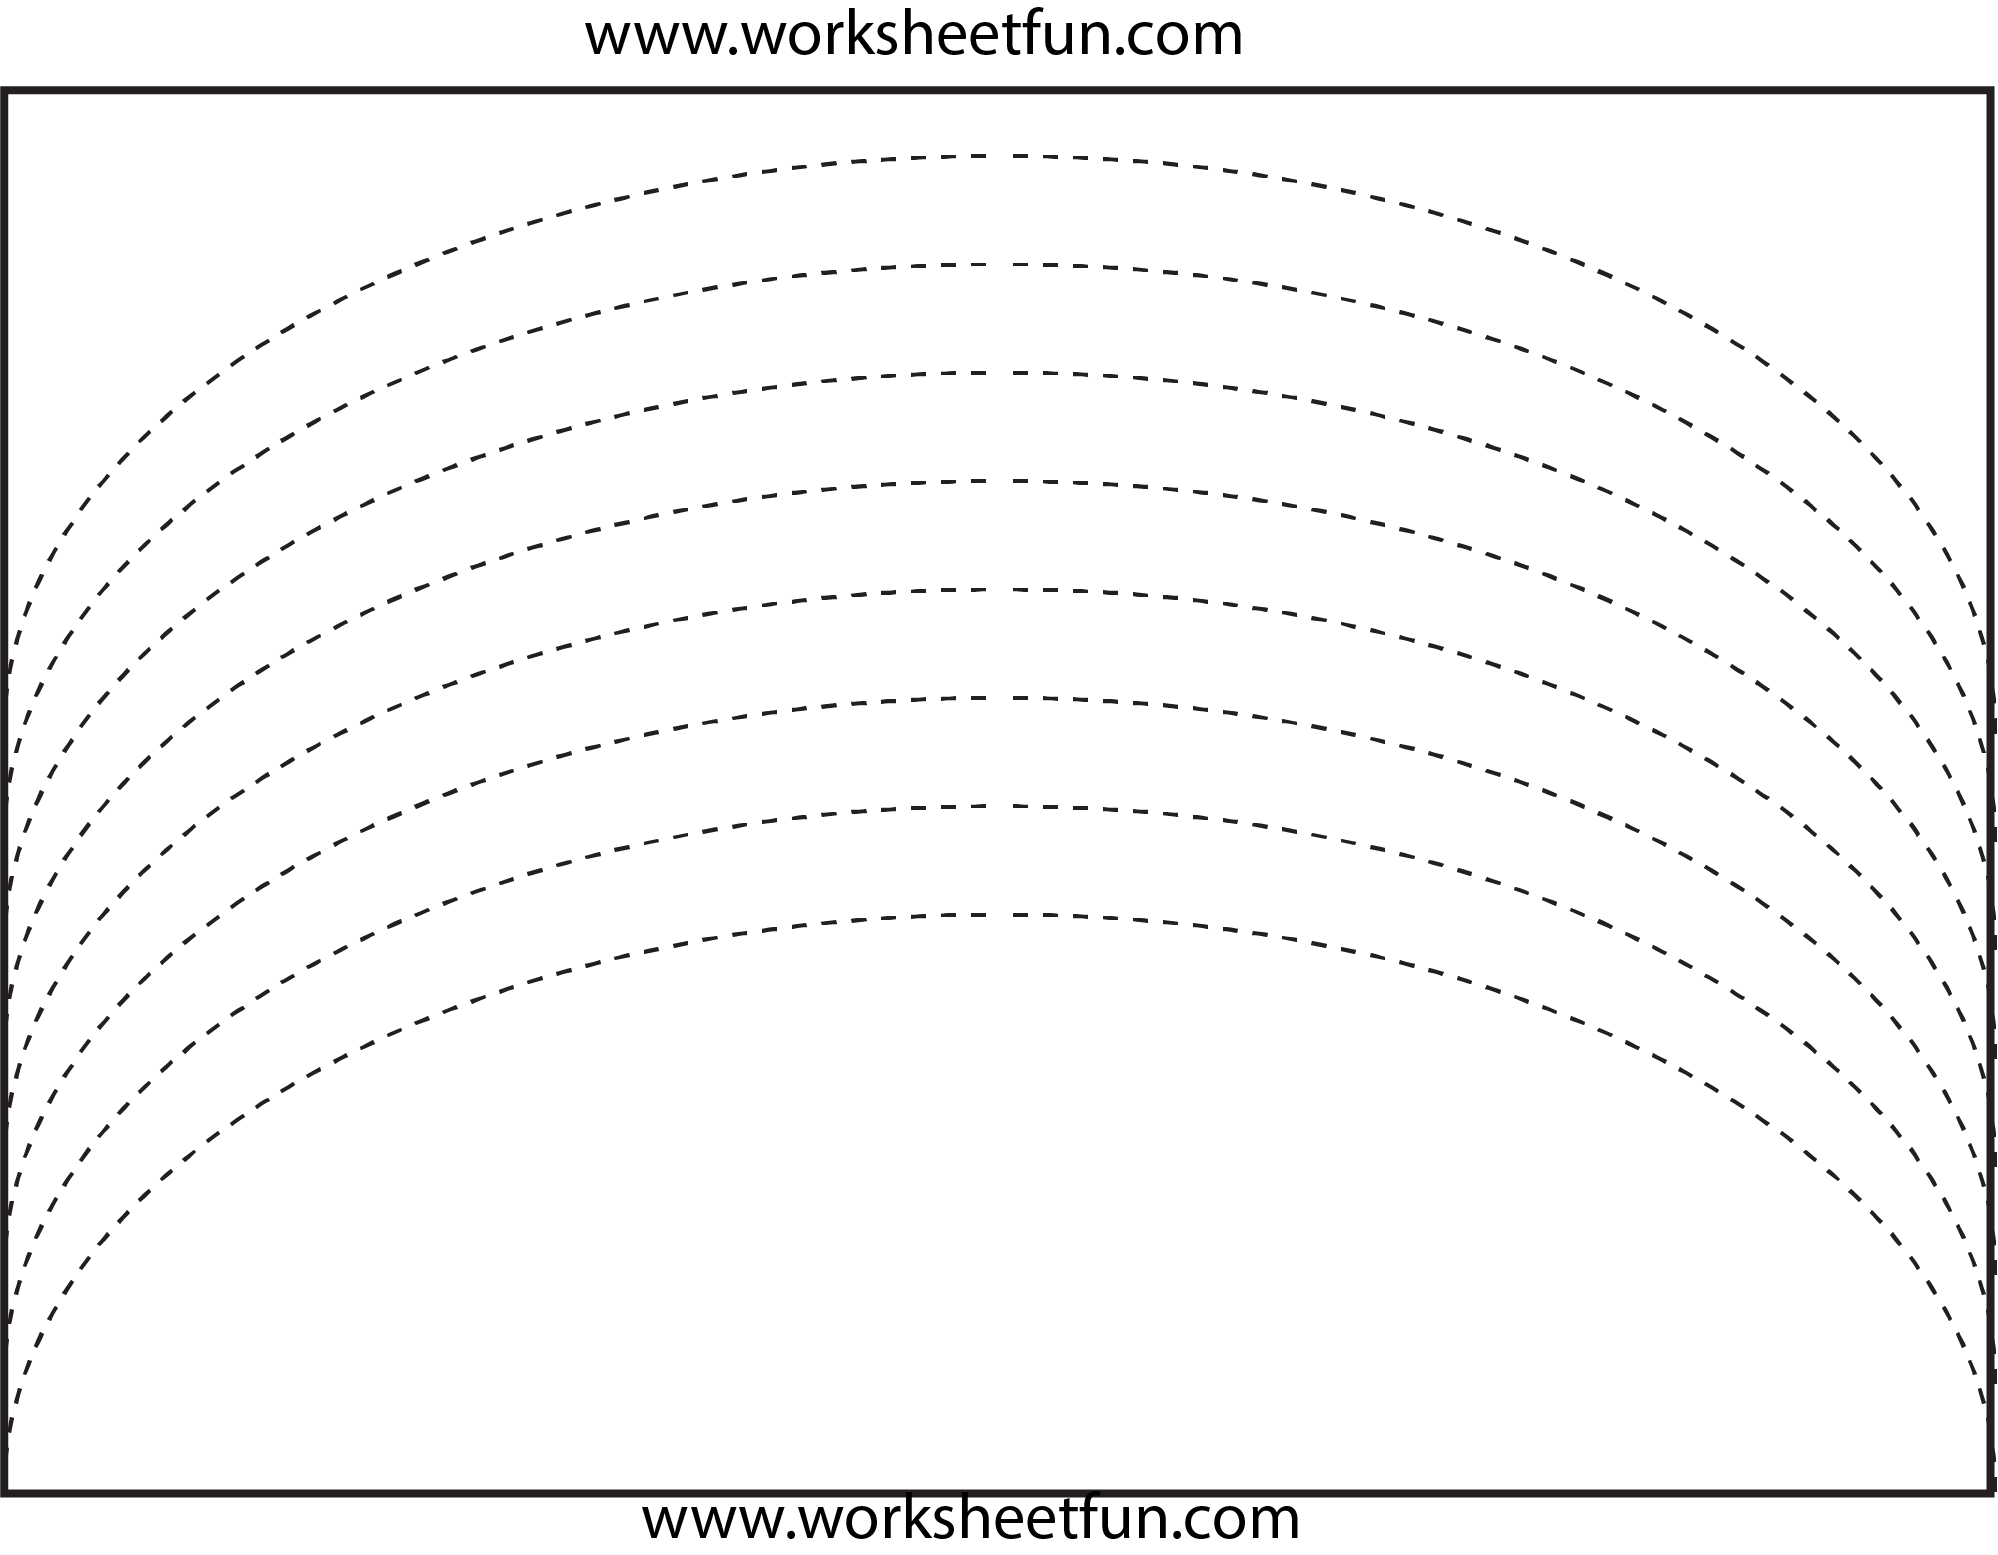 Curved Line Tracing   Preschool Worksheets, Tracing